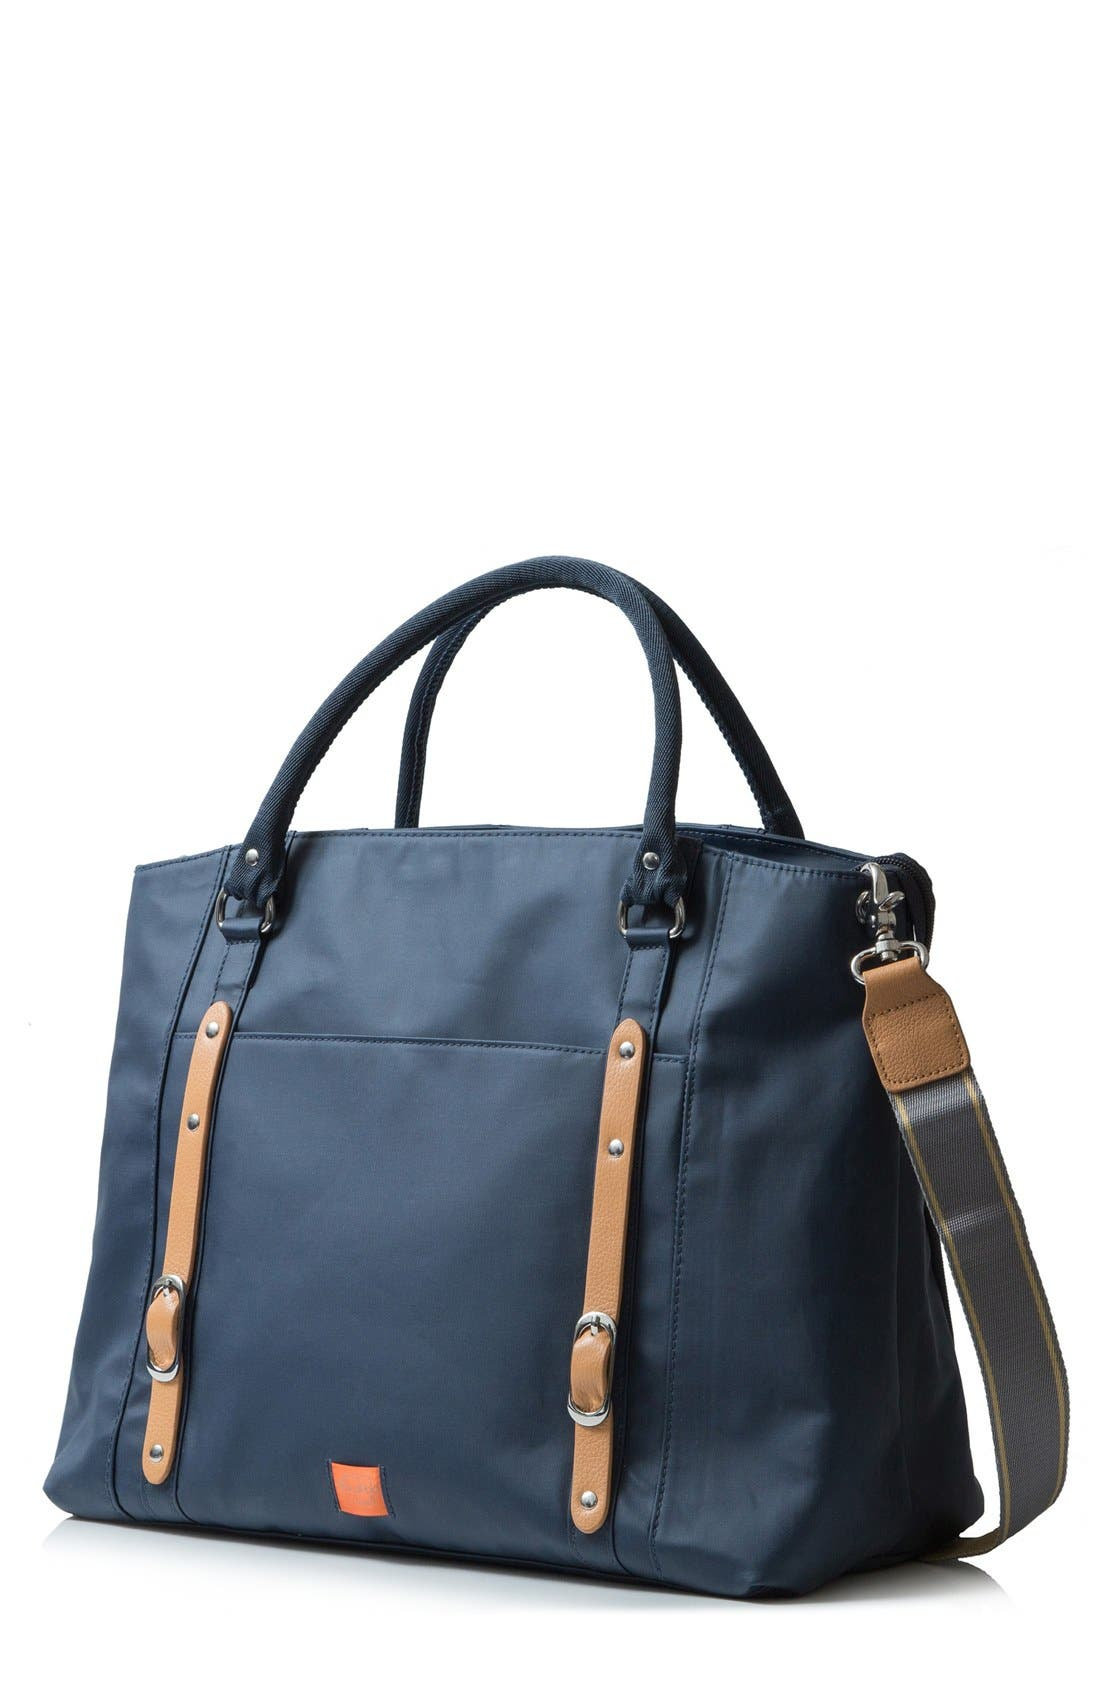 PACAPOD 'Mirano' Diaper Bag